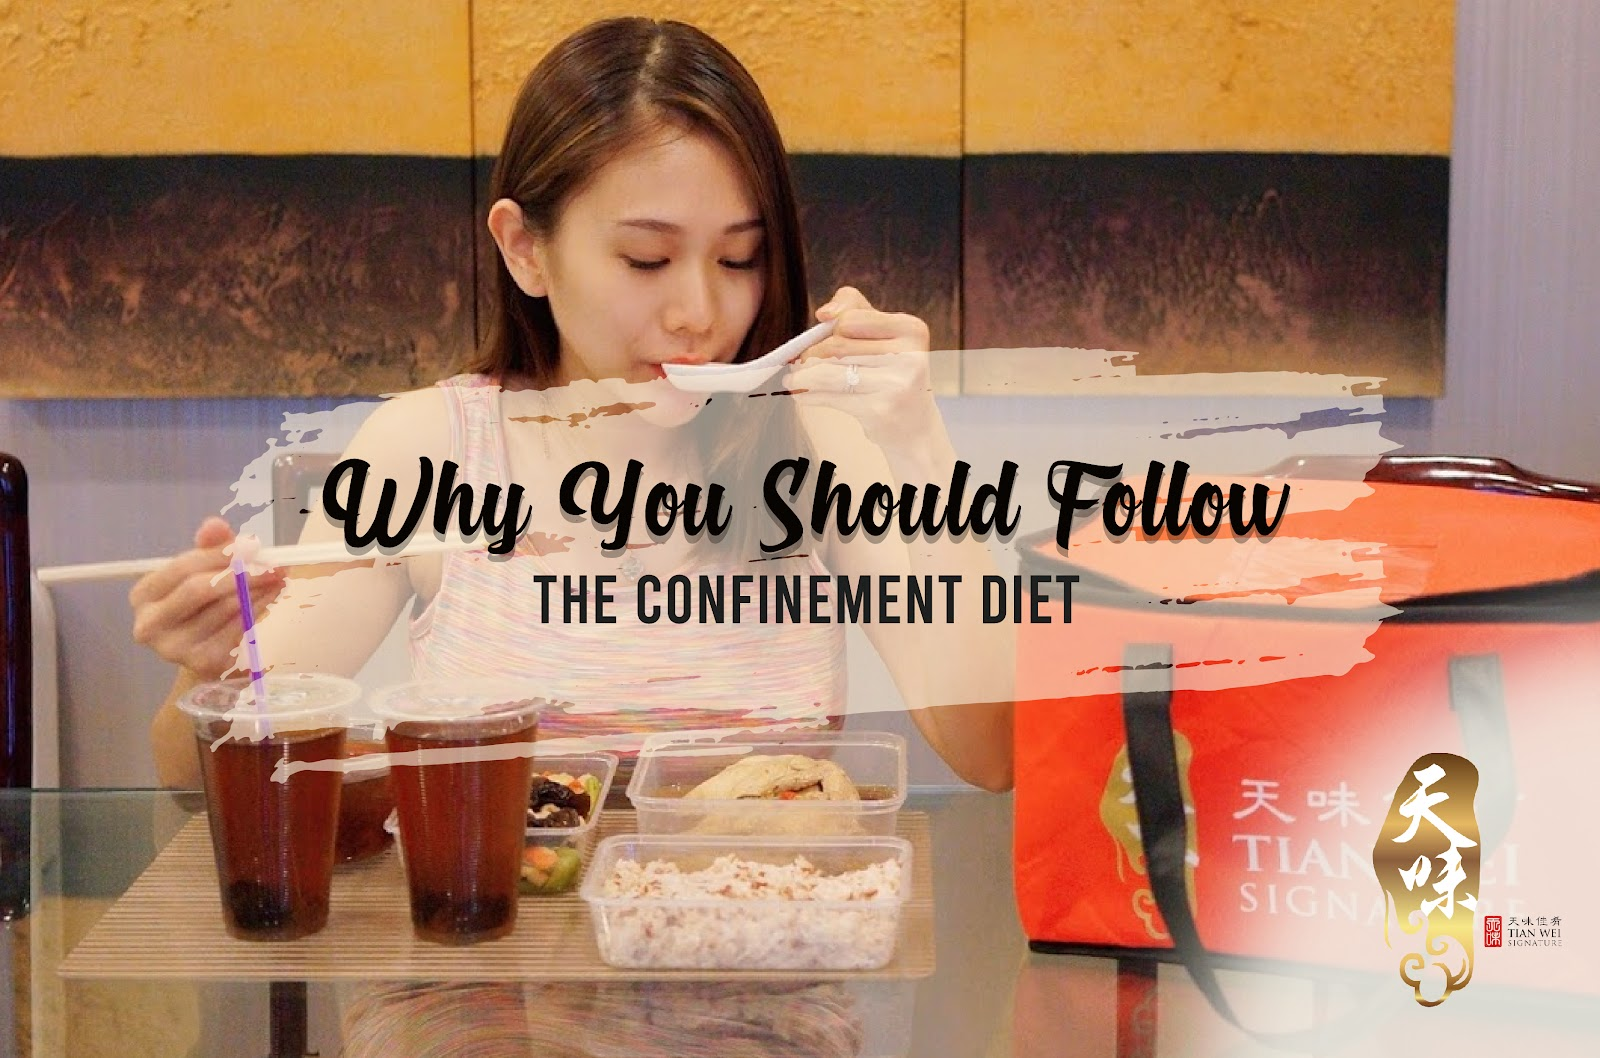 Why Confine your Diet during Confinement?